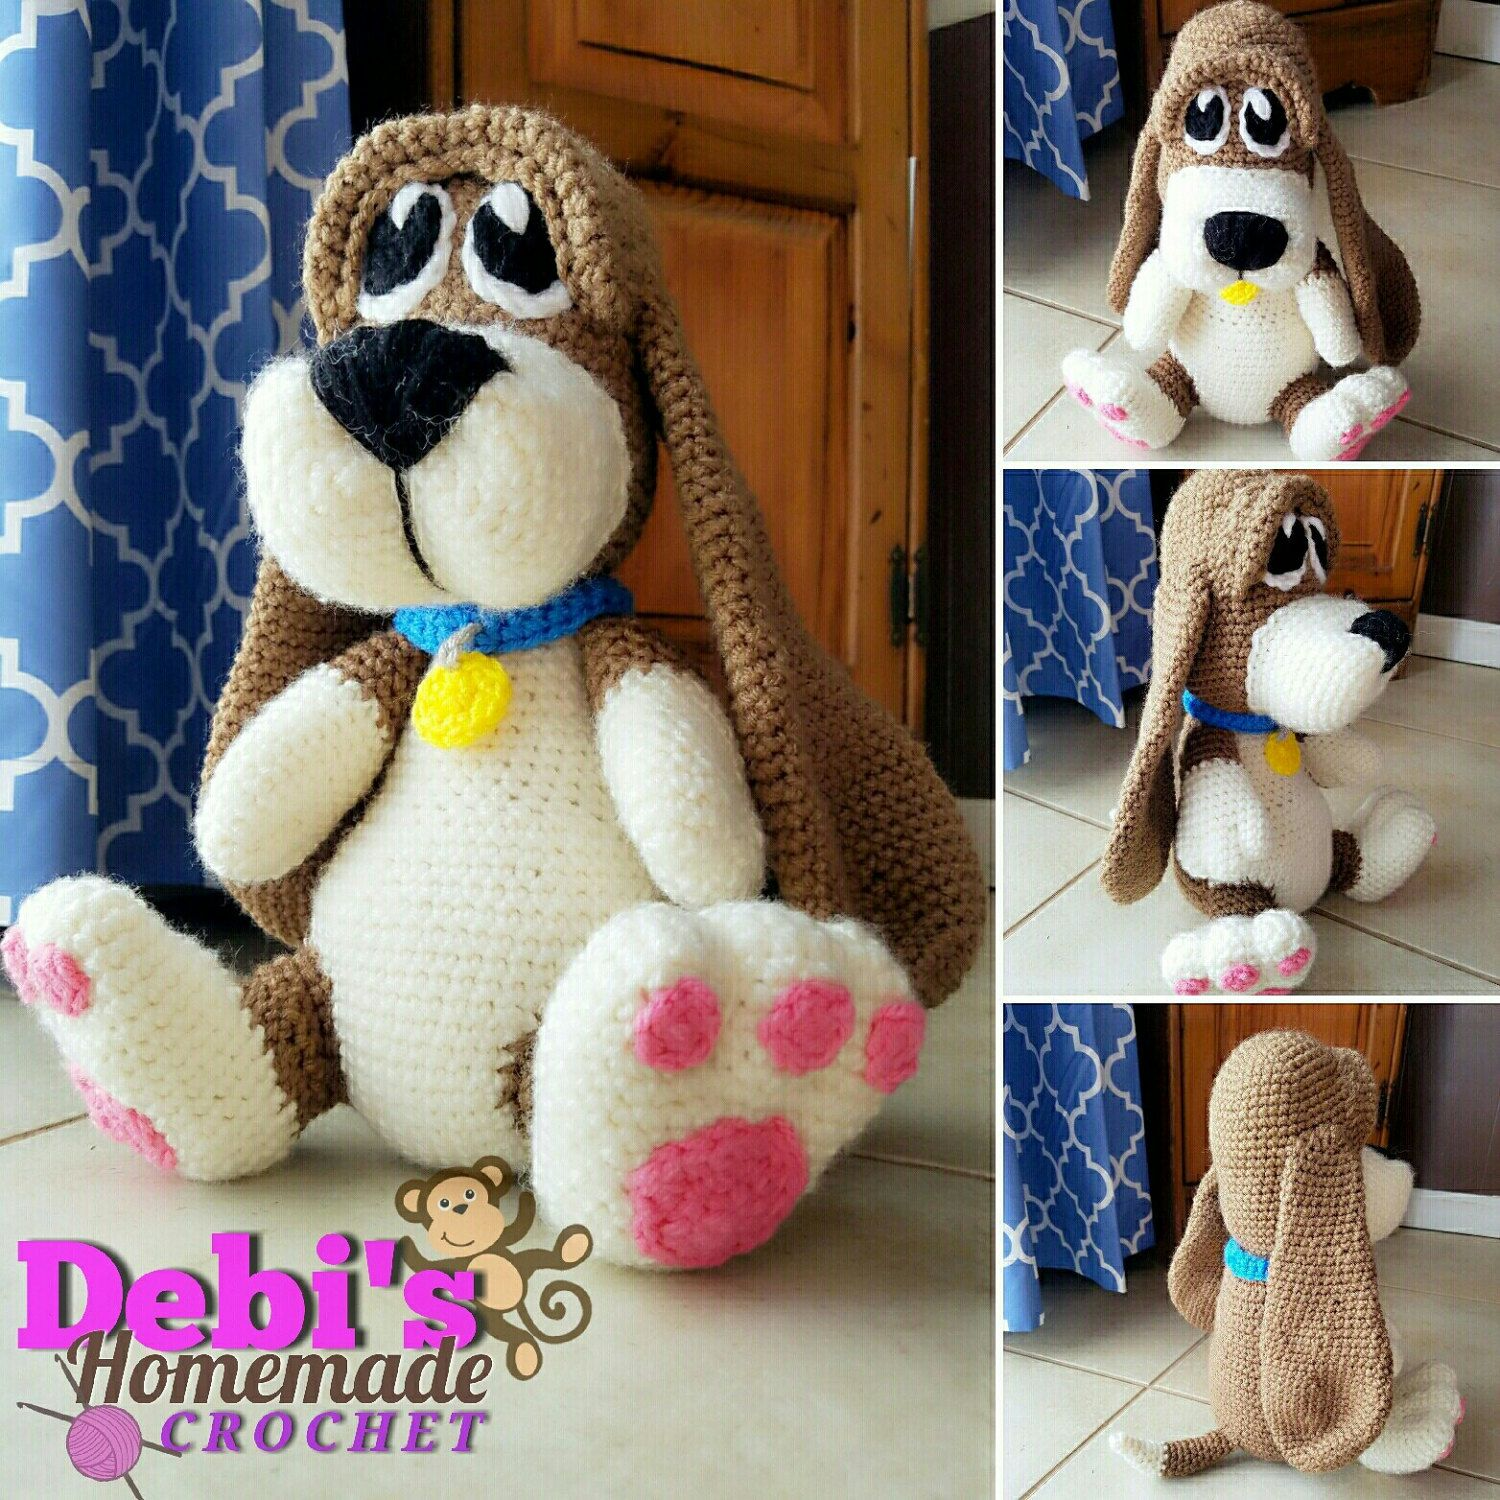 Homemade car toys  Basset Hound Puppy MadetoOrder Crochet  Crochet Color combos